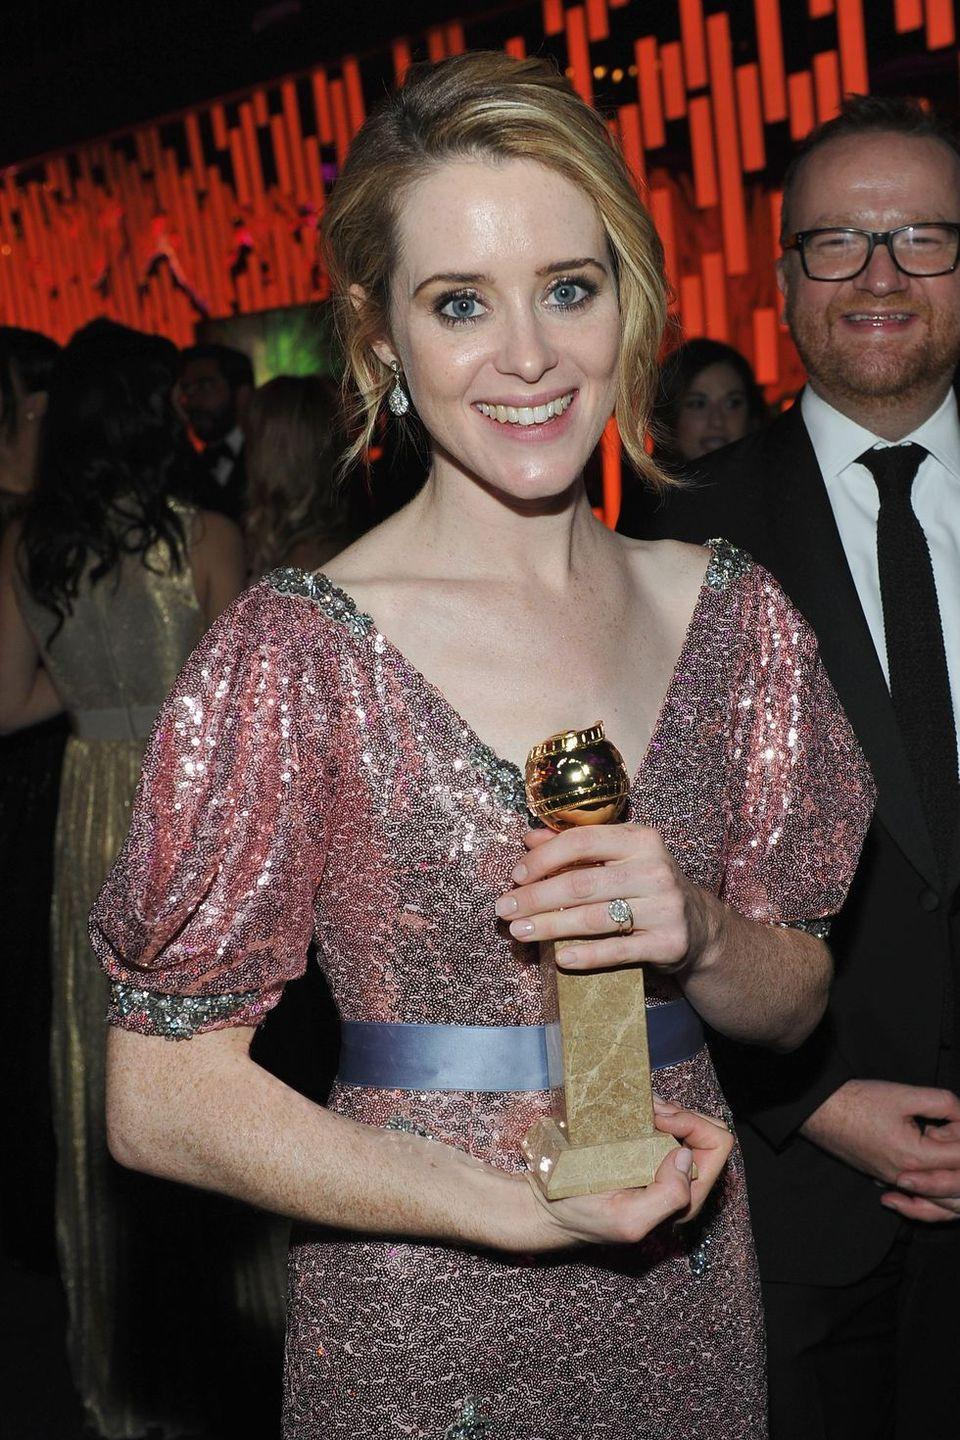 "<p>""I tried to cast almost everyone in Britain before Claire Foy,"" <em>The Crown</em> creator, Peter Morgan, told <em><a href=""http://variety.com/2016/tv/news/the-crown-netflix-royal-series-peter-morgan-claire-foy-1201907444/"" rel=""nofollow noopener"" target=""_blank"" data-ylk=""slk:Variety"" class=""link rapid-noclick-resp"">Variety</a></em>. ""It was weird. Every time I went to a read through where we were doing auditions for 'The Queen,' I was interested in actress A or B I would skip the bit where Claire was in there. And then after about the fourth time, I went, 'This one is sensational, who's this?' And they said, 'Pete, she's been in four times. And you've gone for a better-known actress.' She very queen-like[,] slipped in and has proven to be very queen-like. Brilliantly effective.""</p>"